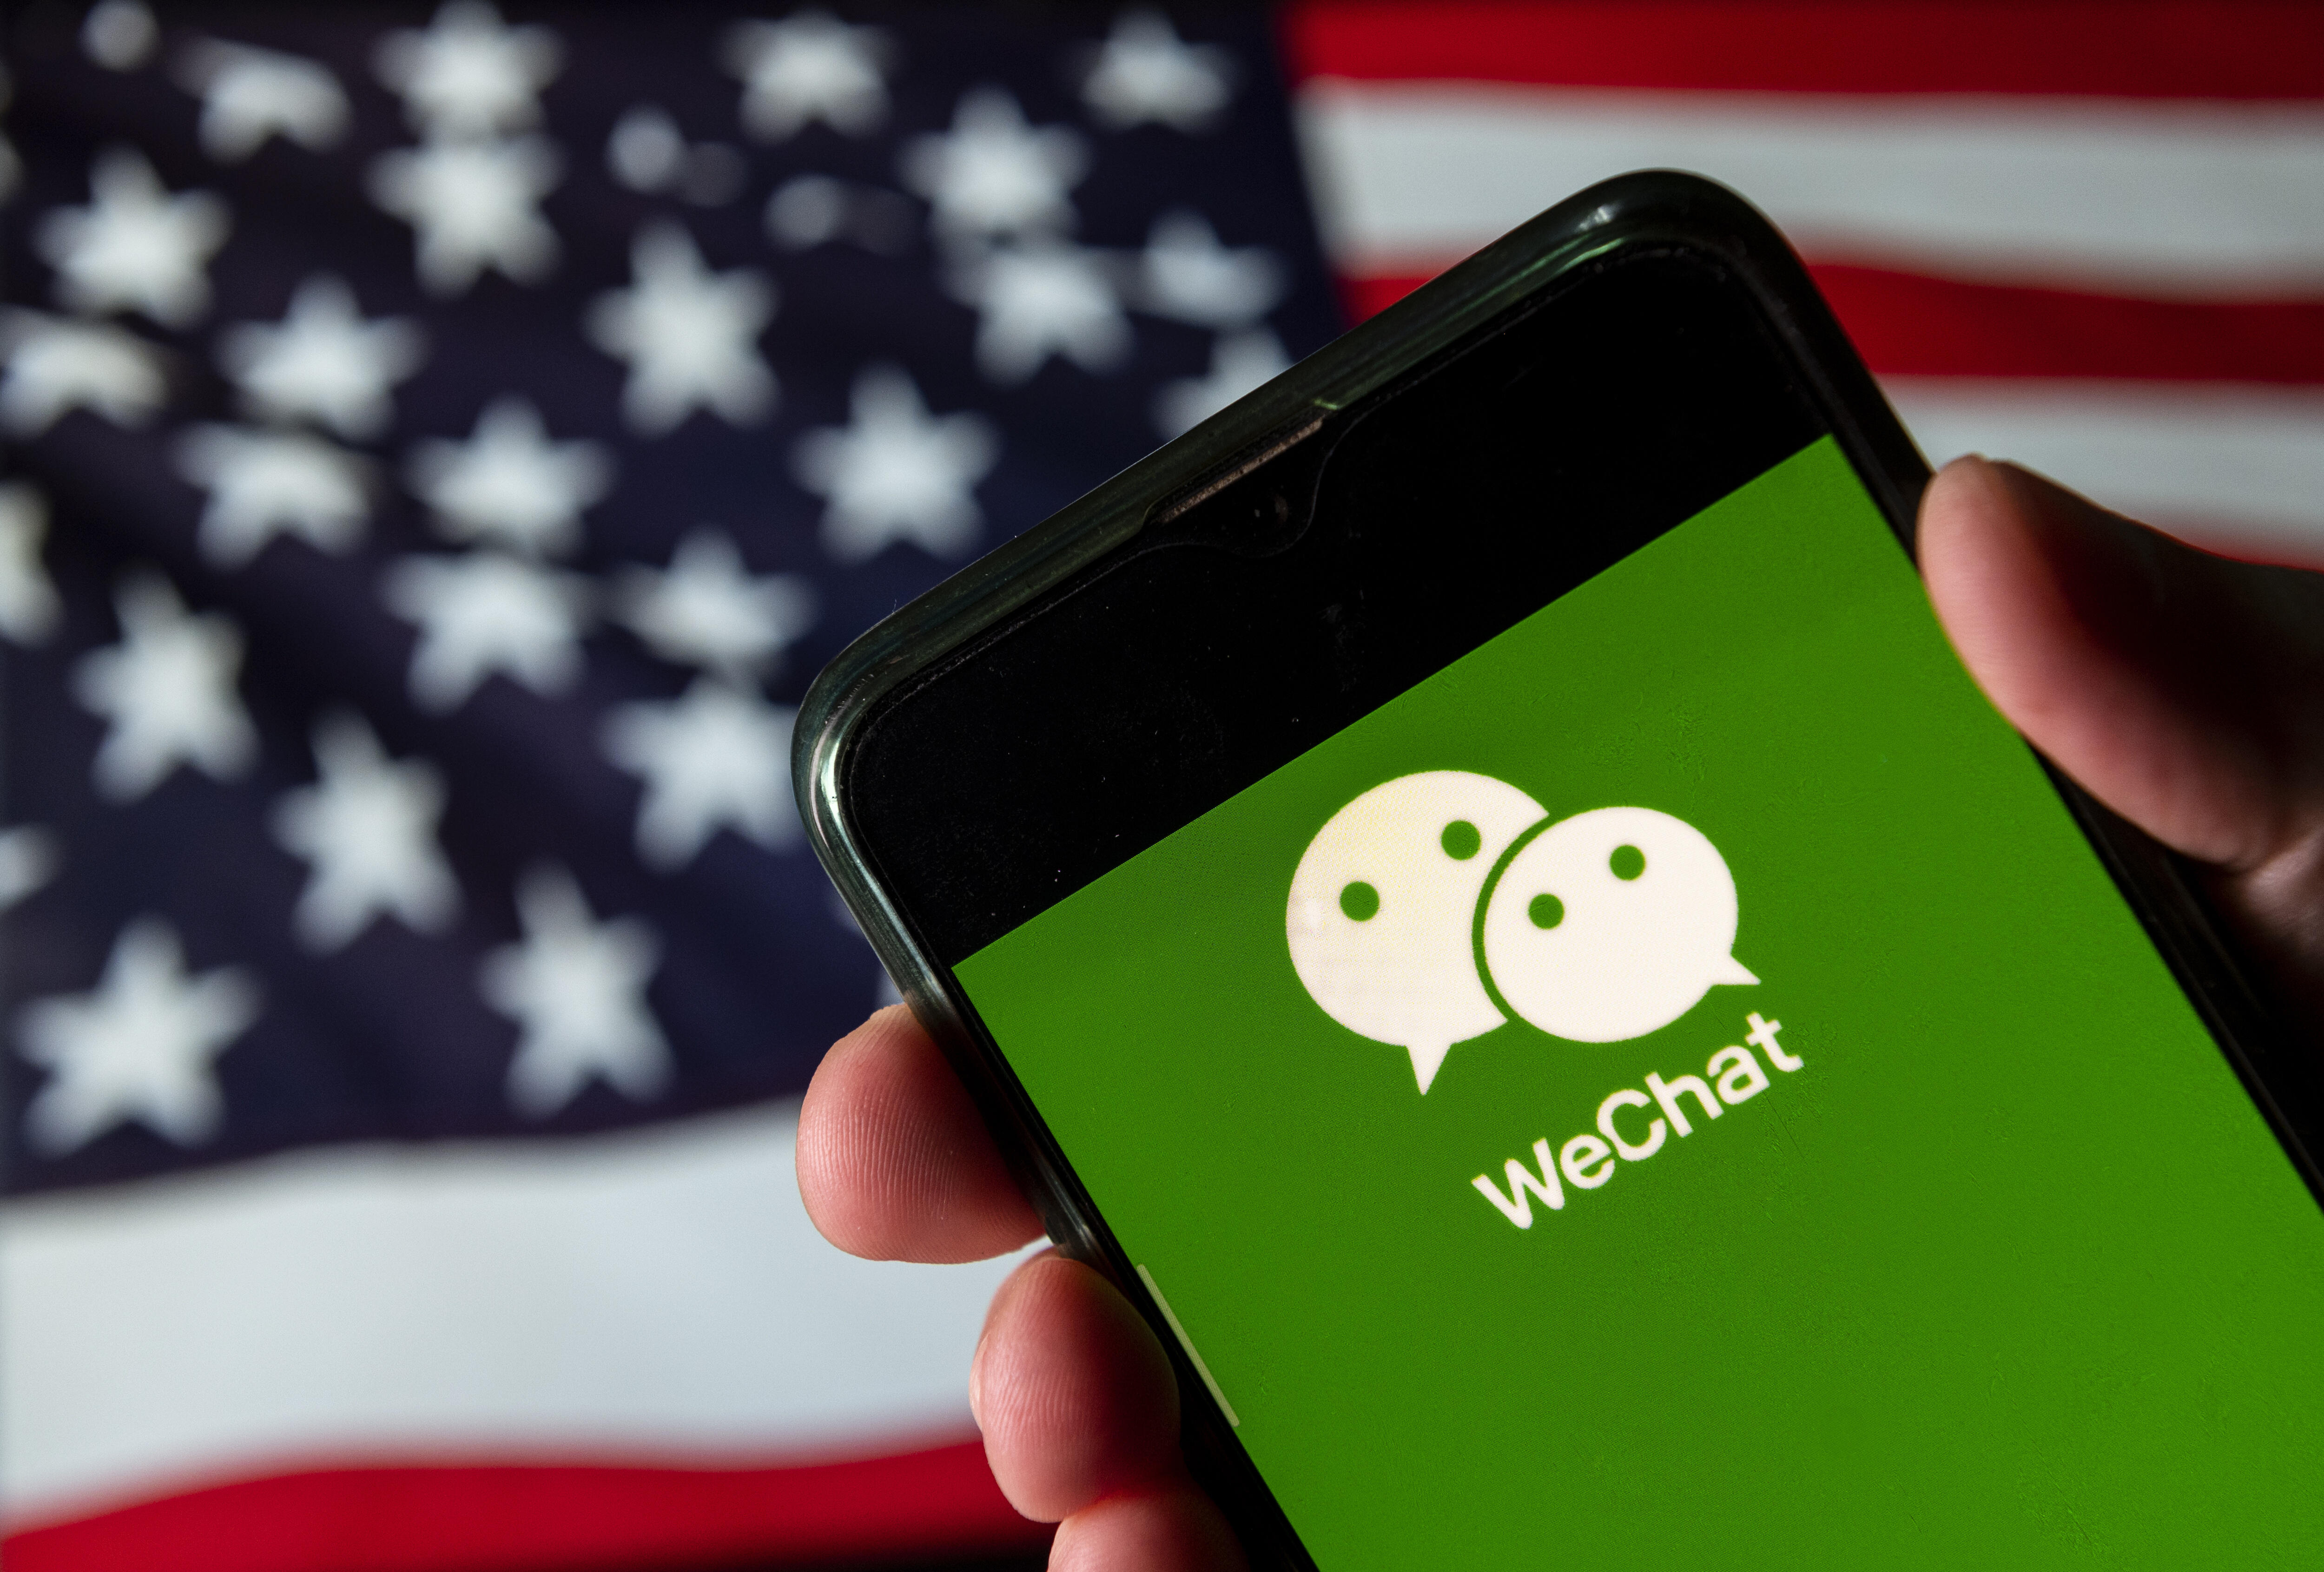 WeChat ban: Apple, Disney, others reportedly push back on call with White House